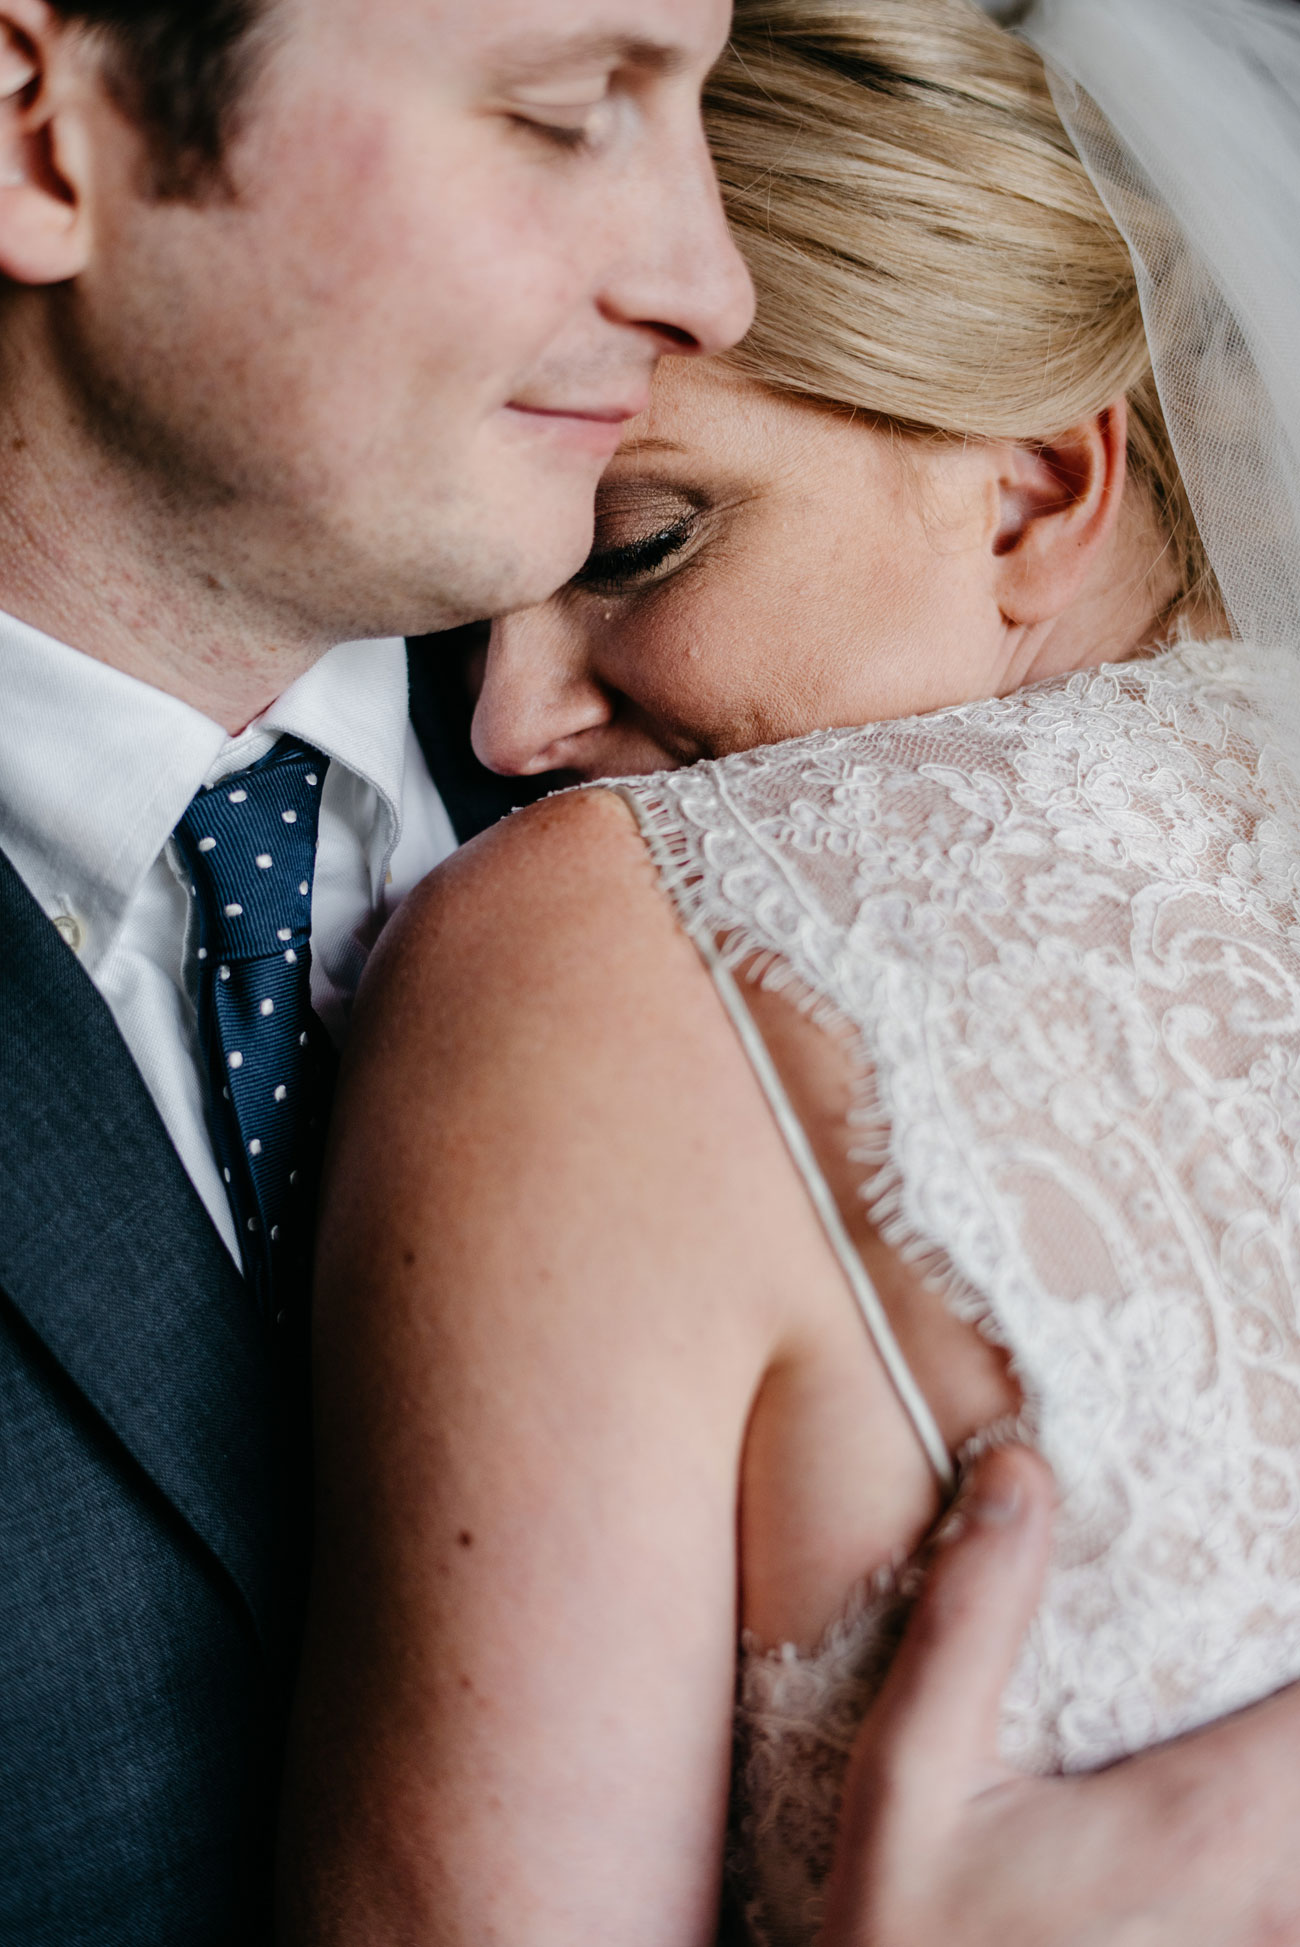 cute moment with bride and groom at a private estate in new england